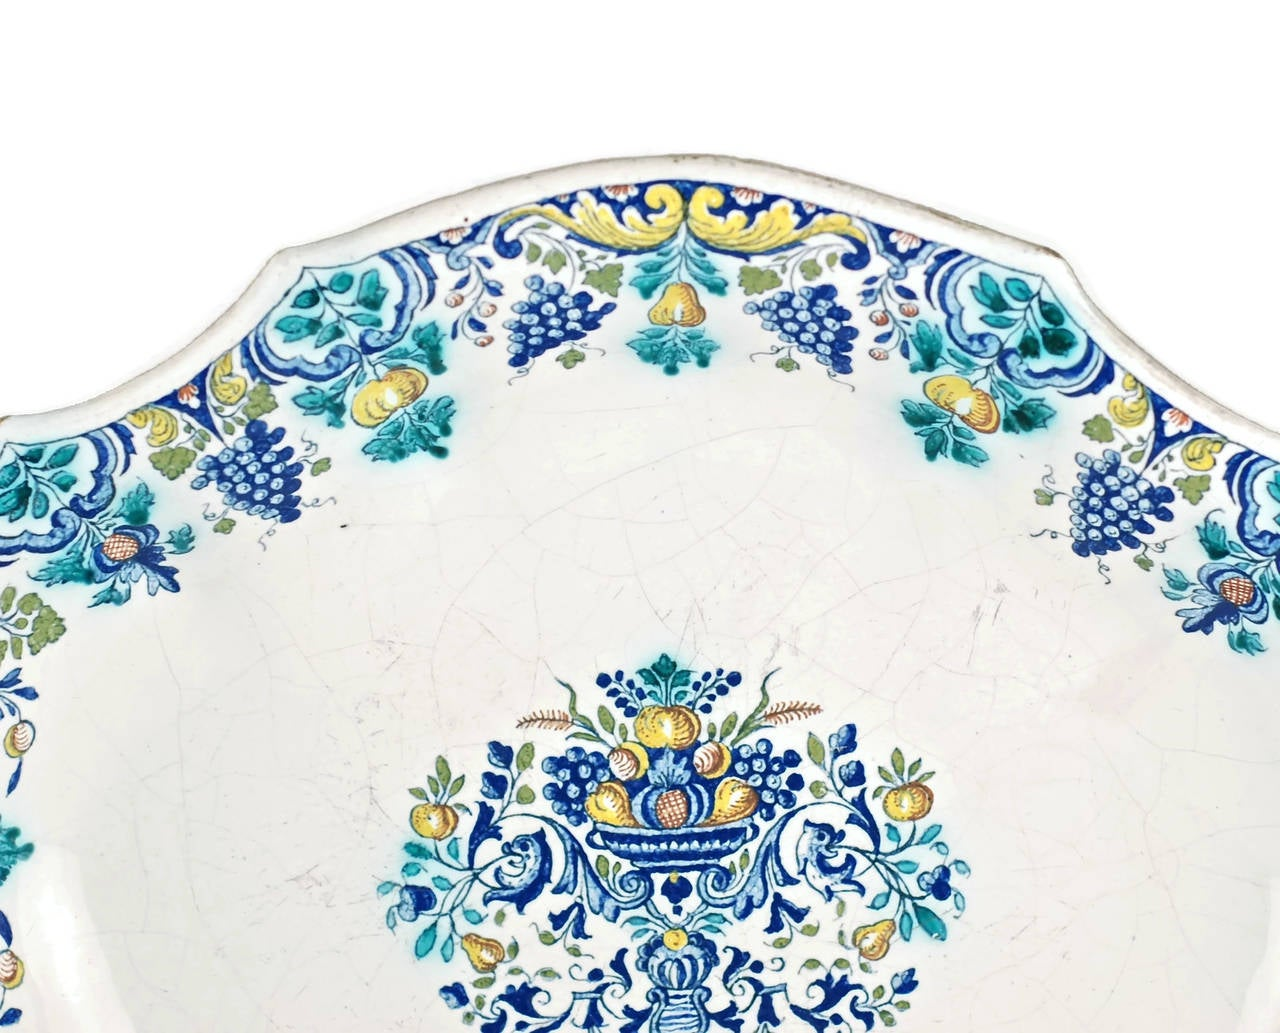 Rococo 18th Century Polychrome Faience Lobed Platter For Sale